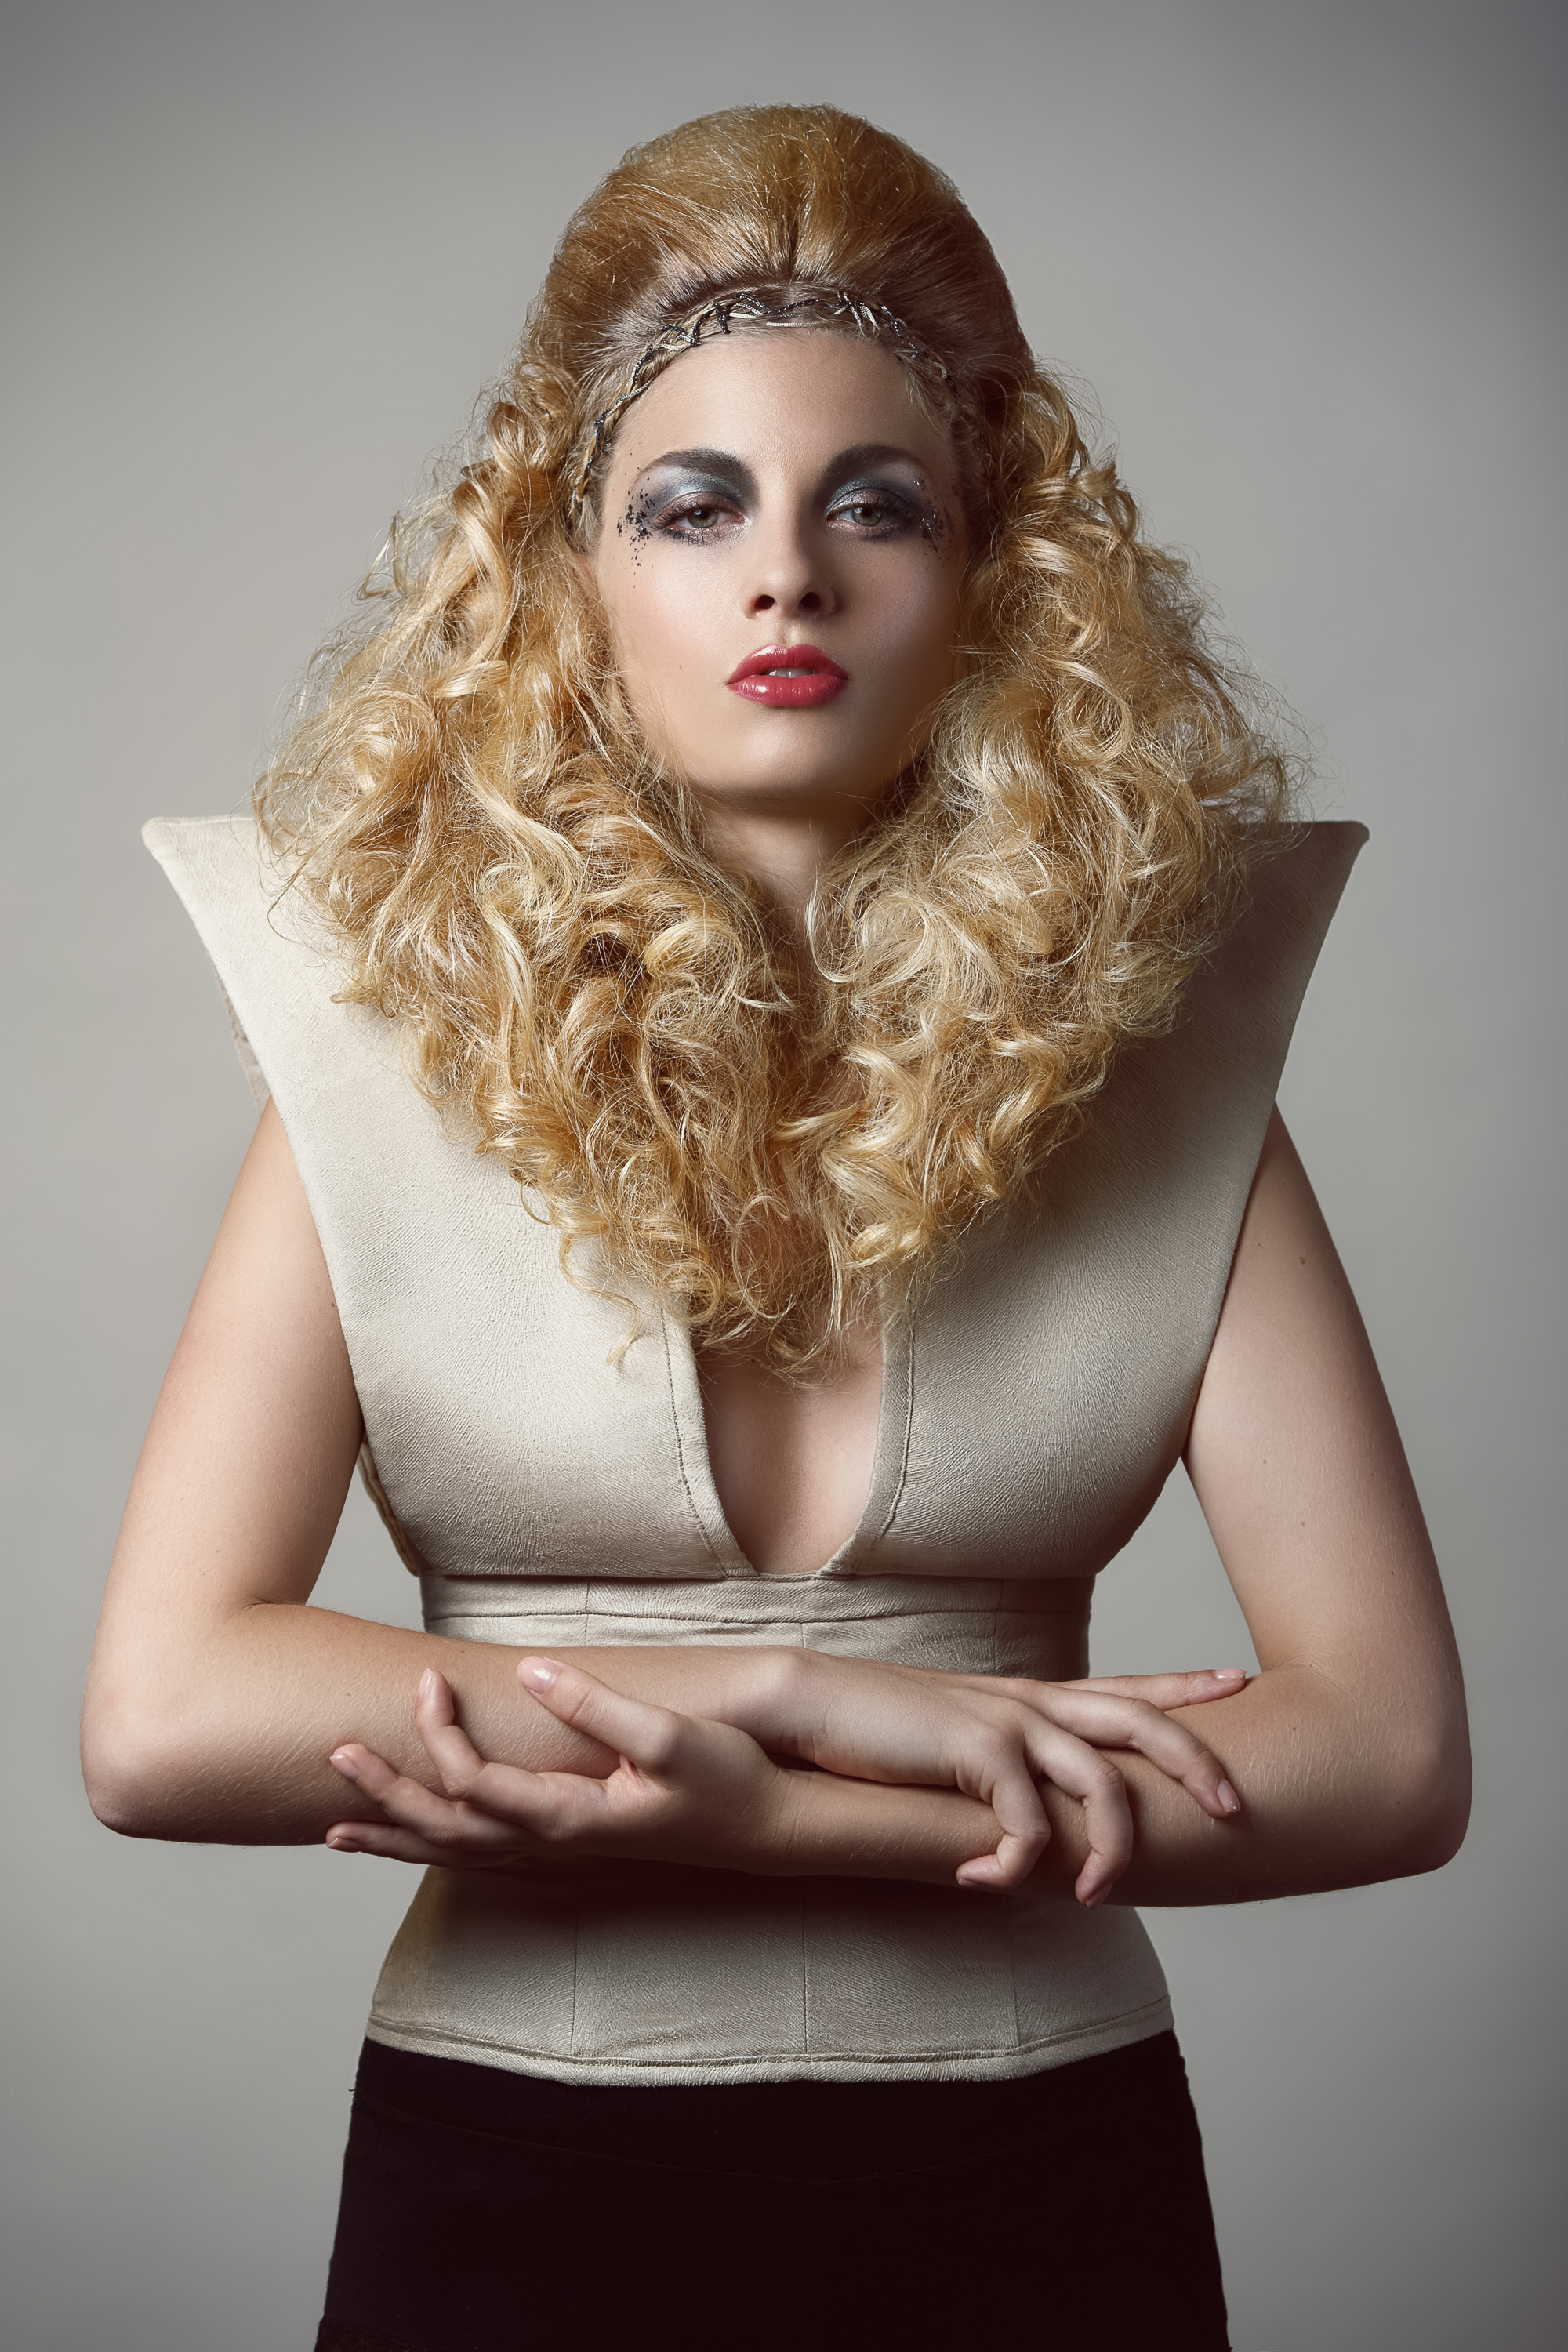 Hair Dressing Award 2014 - Blond